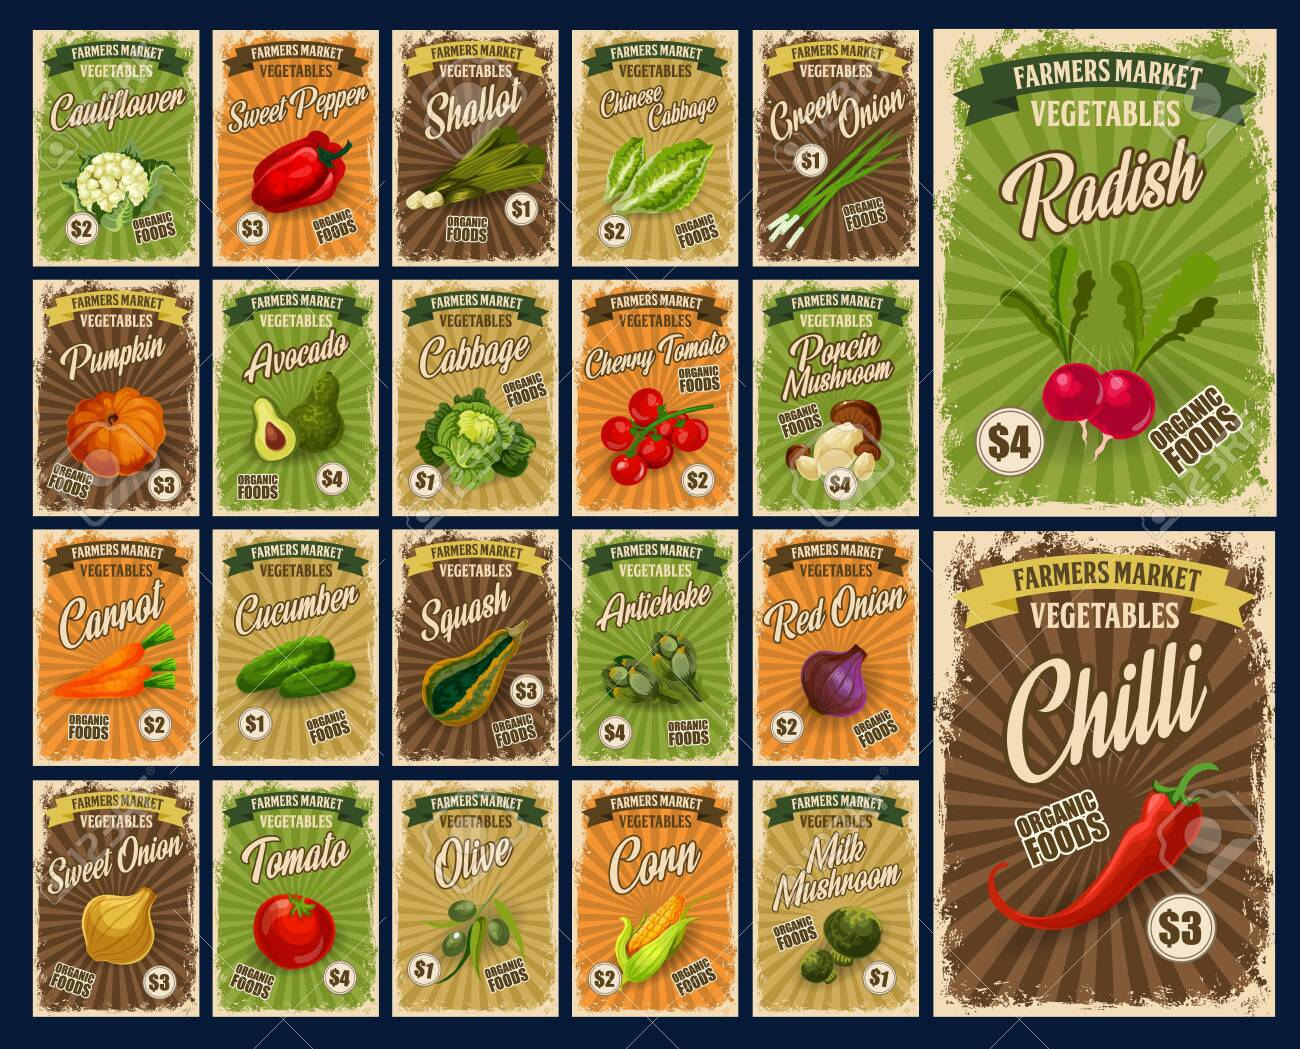 Vegetables Farm Market Veggies Salads And Organic Food Price Royalty Free Cliparts Vectors And Stock Illustration Image 134804948